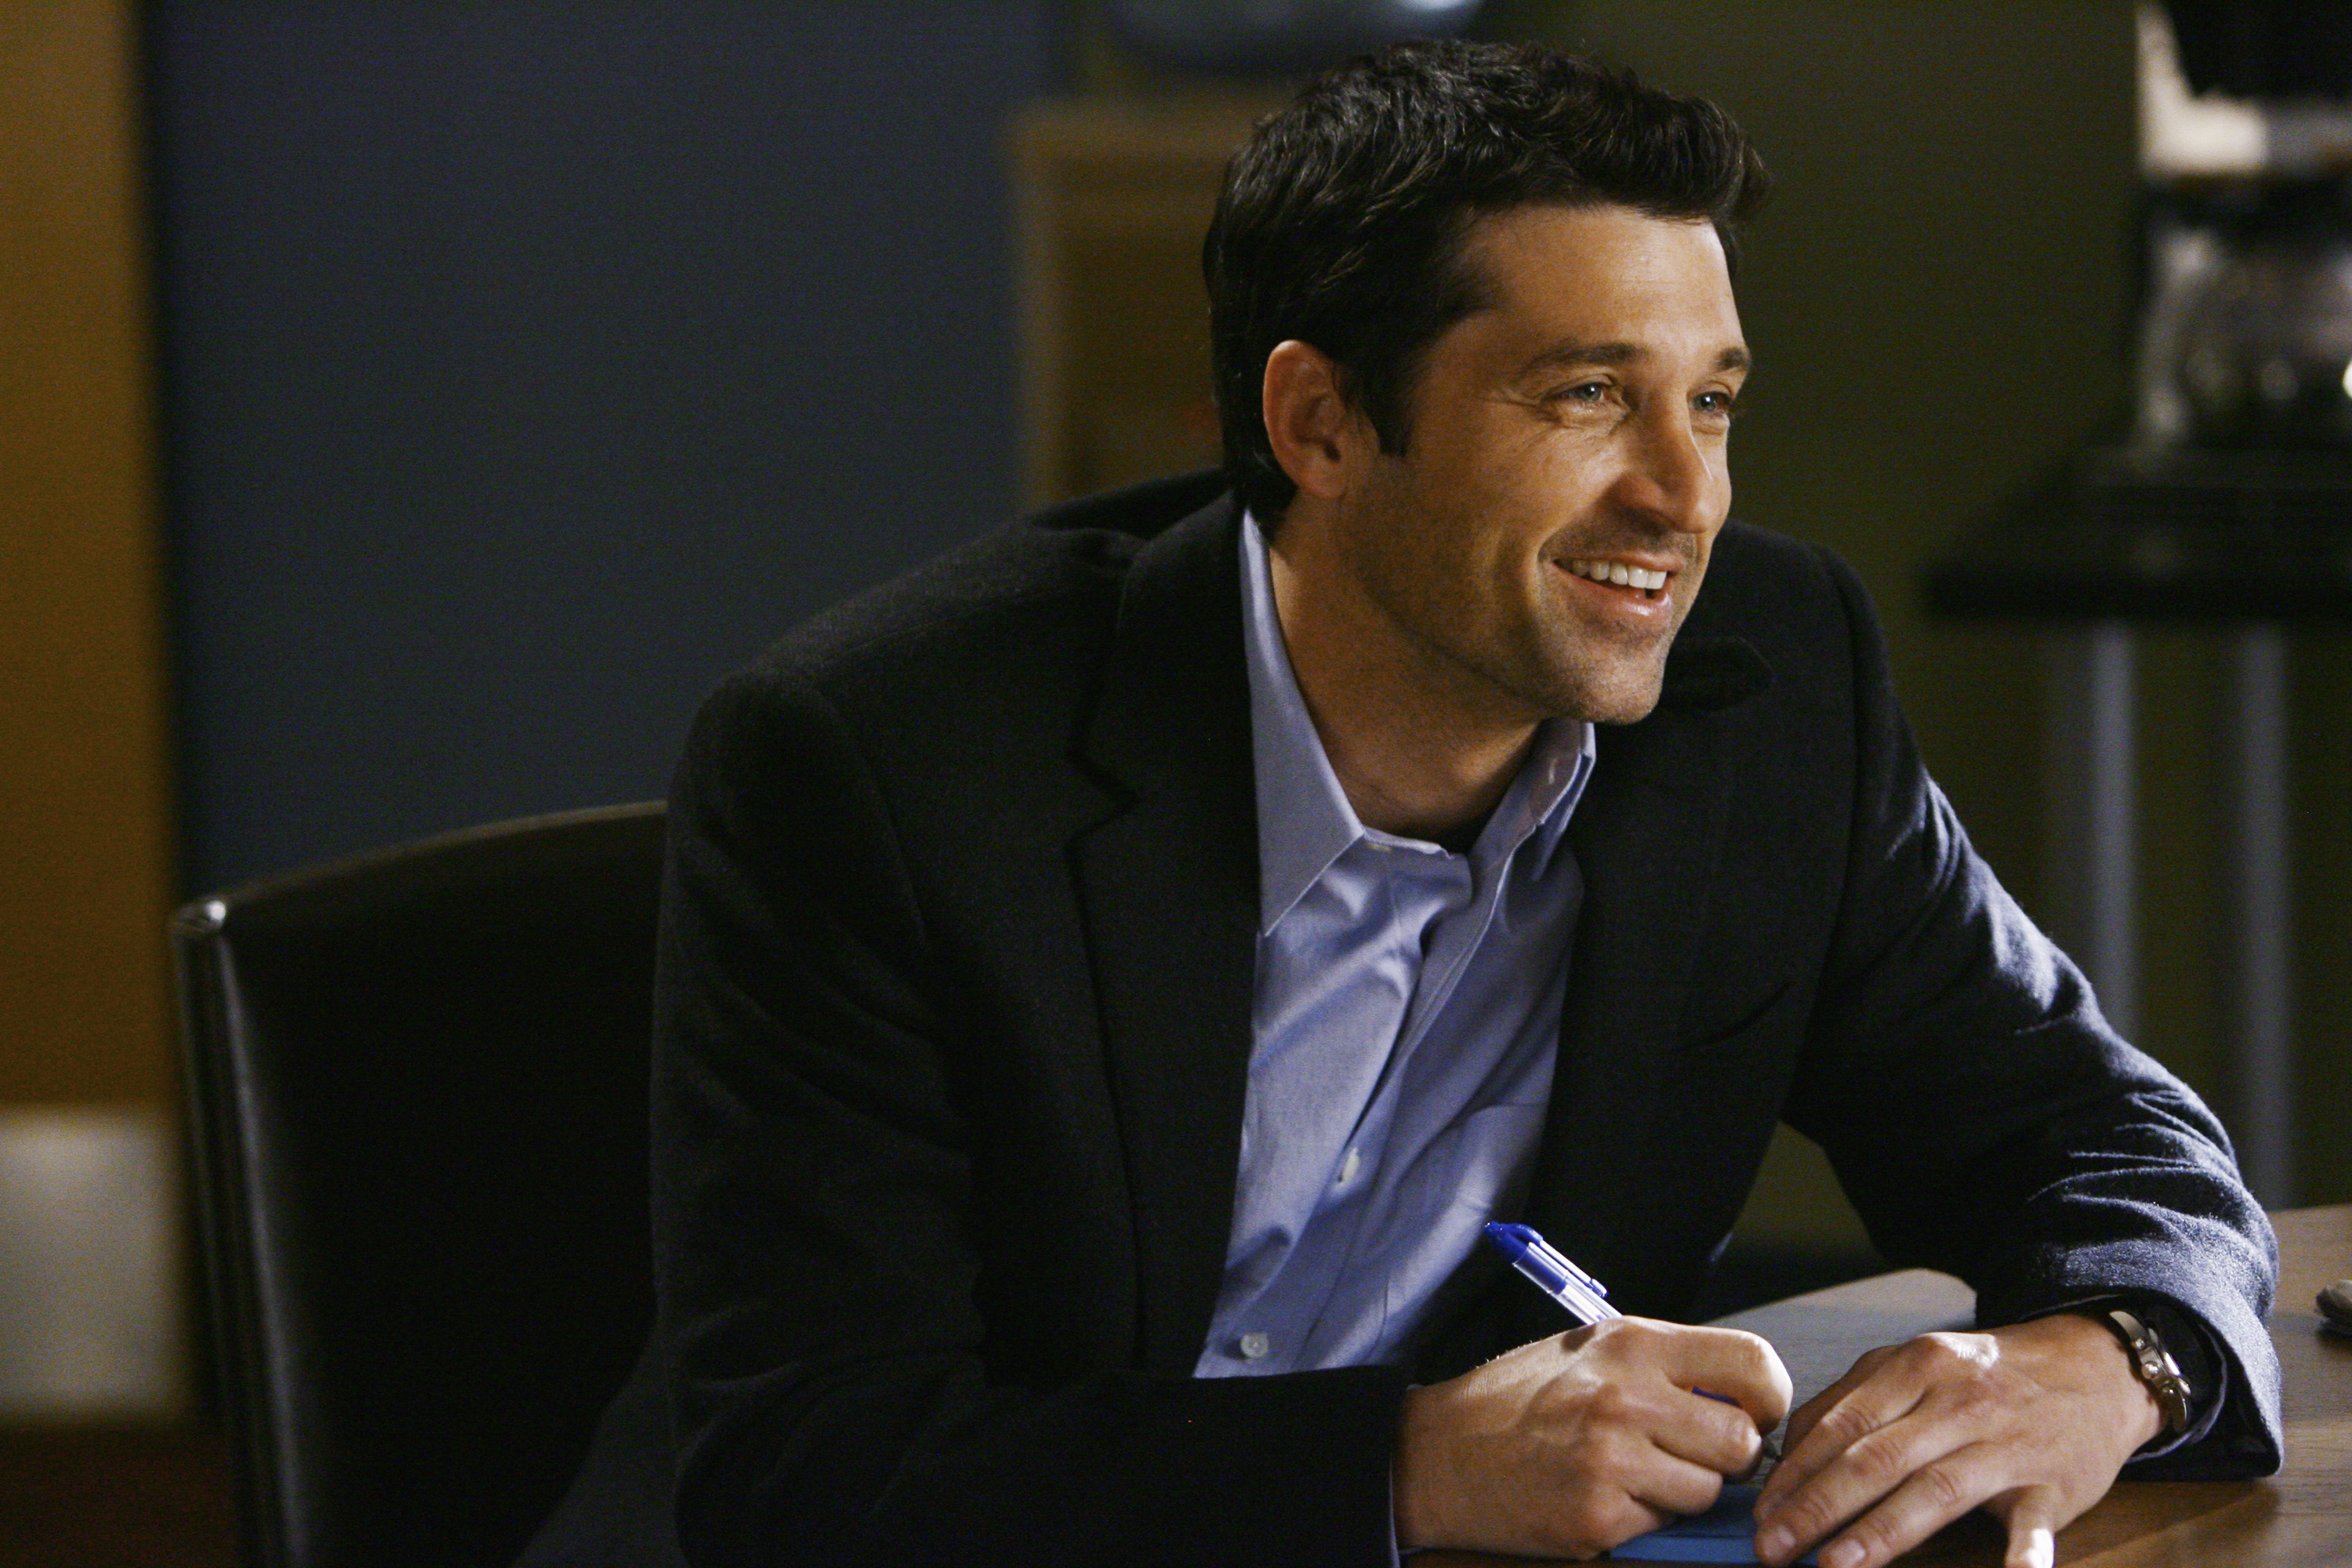 File Photo of Patrick Dempsey as he stars as  McDreamy  in Greys Anatomy.